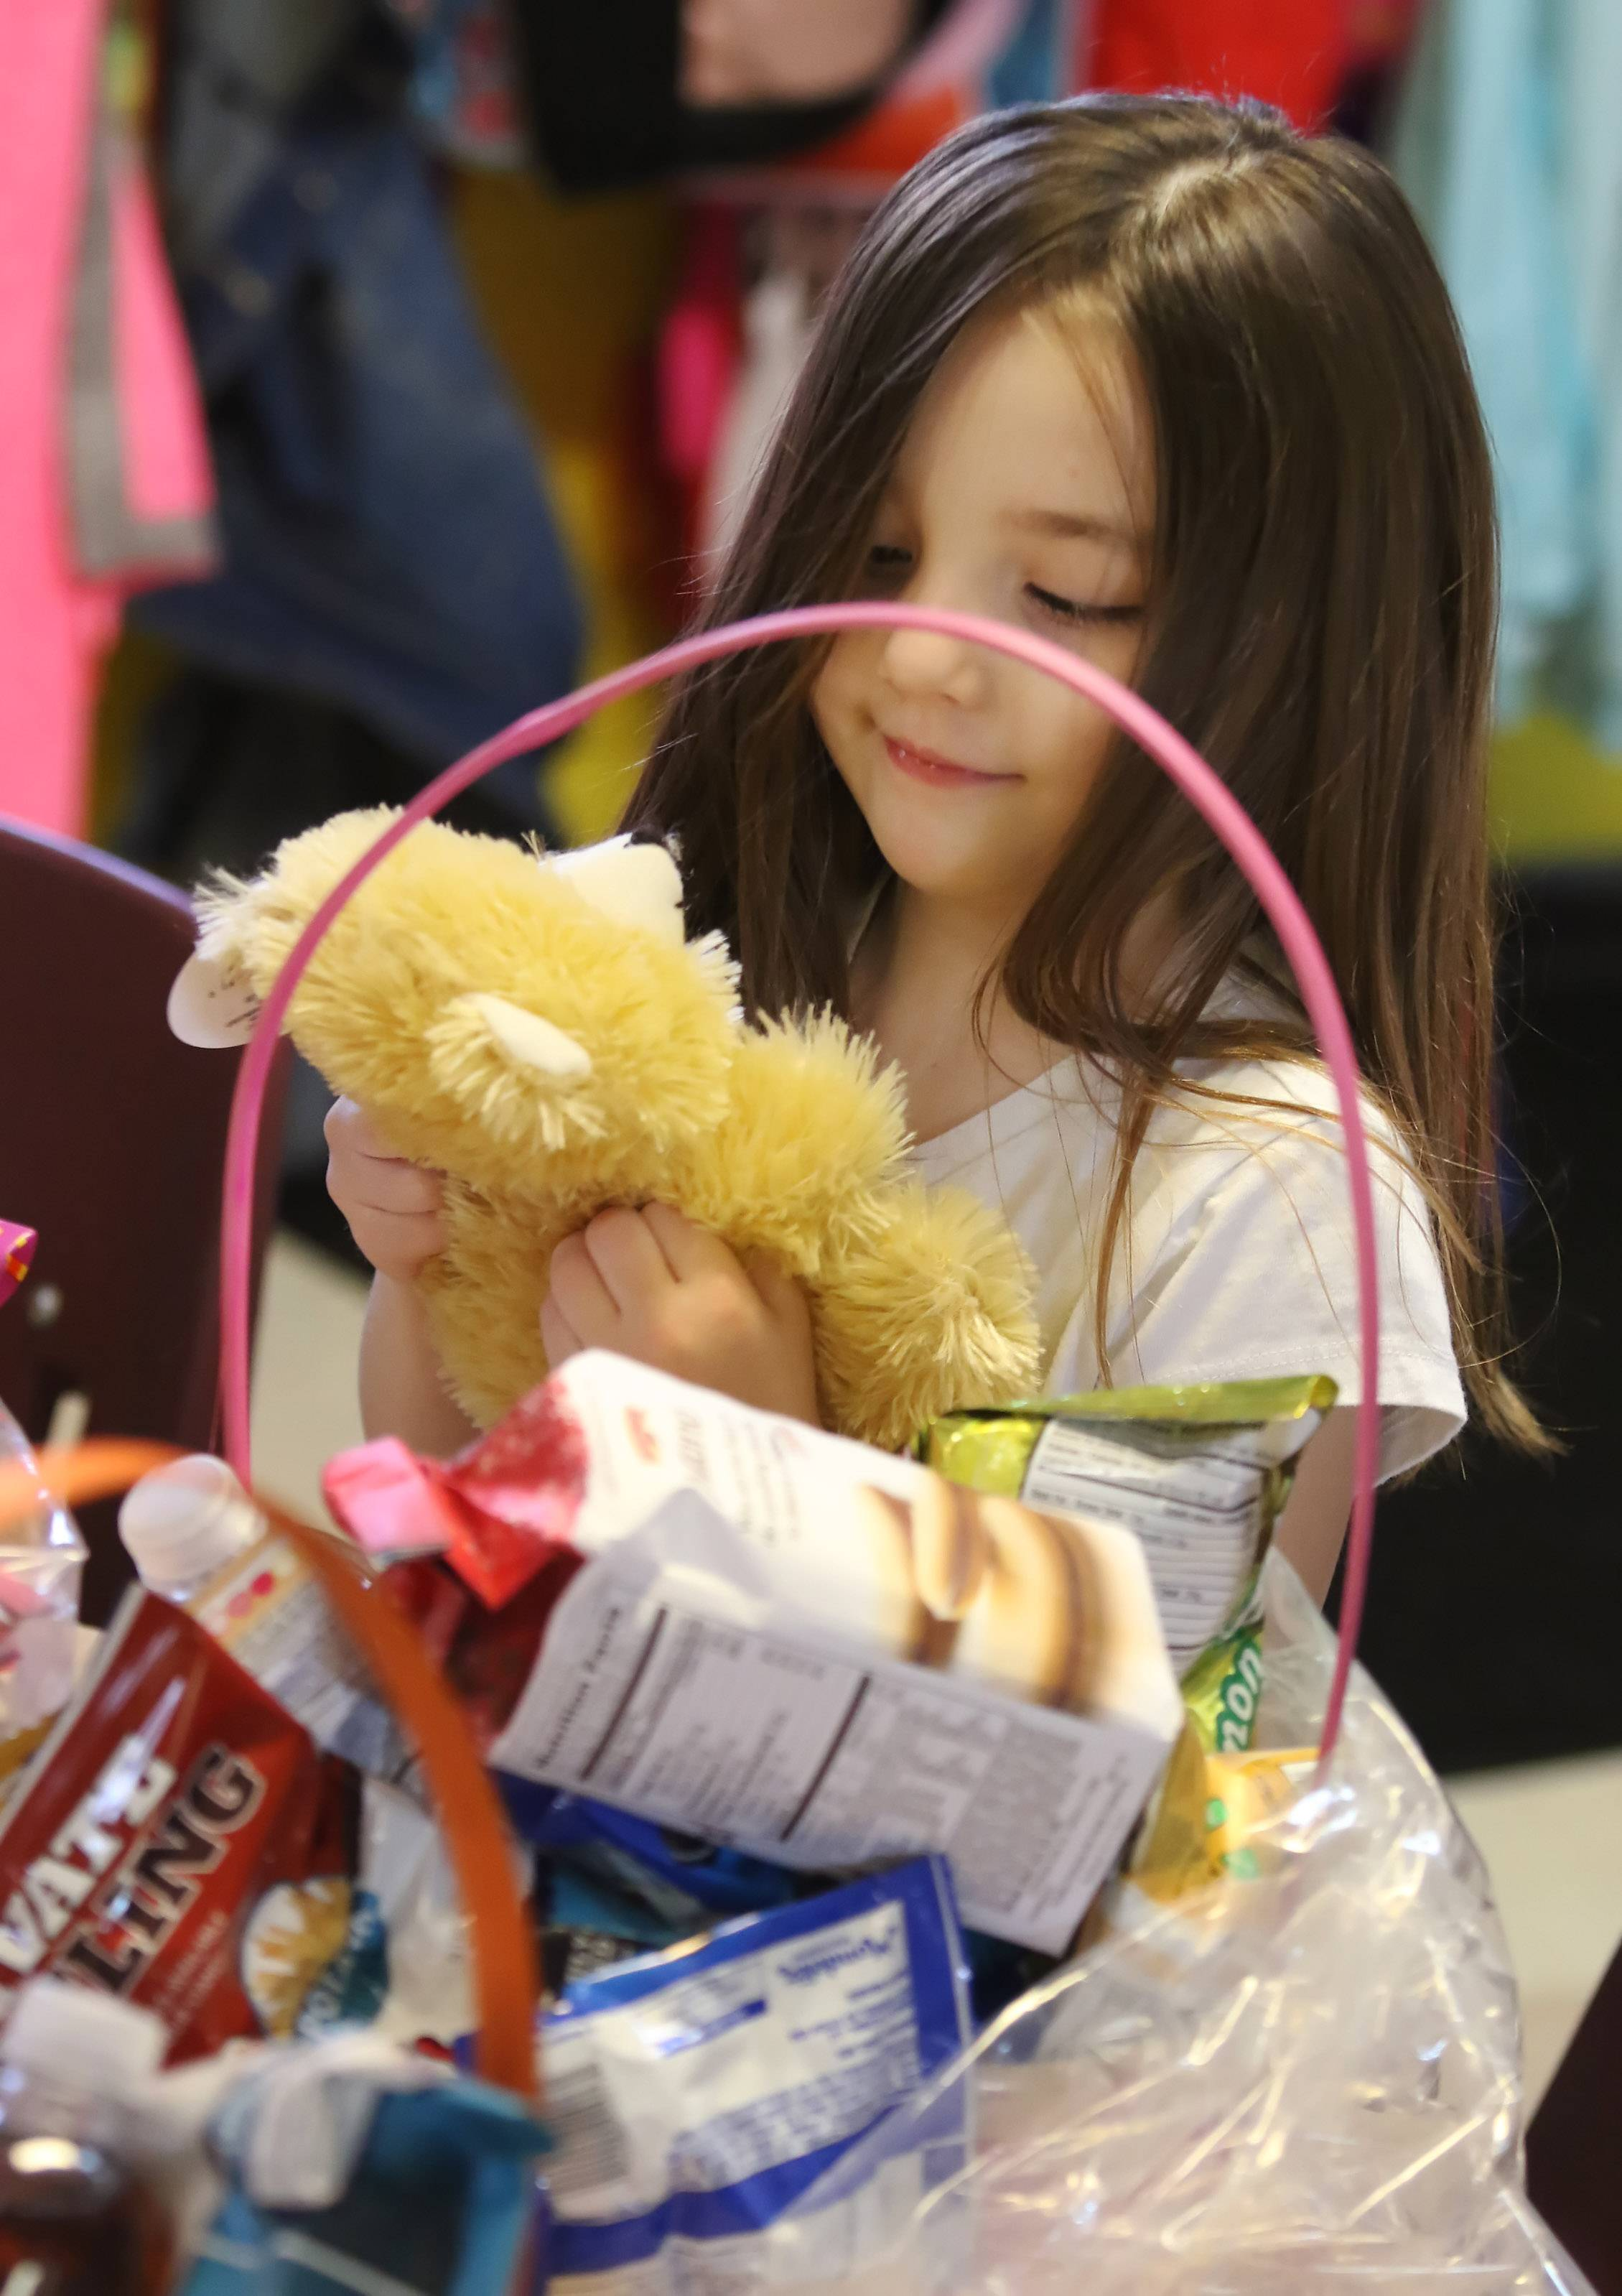 Preschooler Trinity Paice, 5, of Lake Villa hugs a teddy bear before placing it in an Easter basket Wednesday at the Lindenhurst Early Childhood Center.